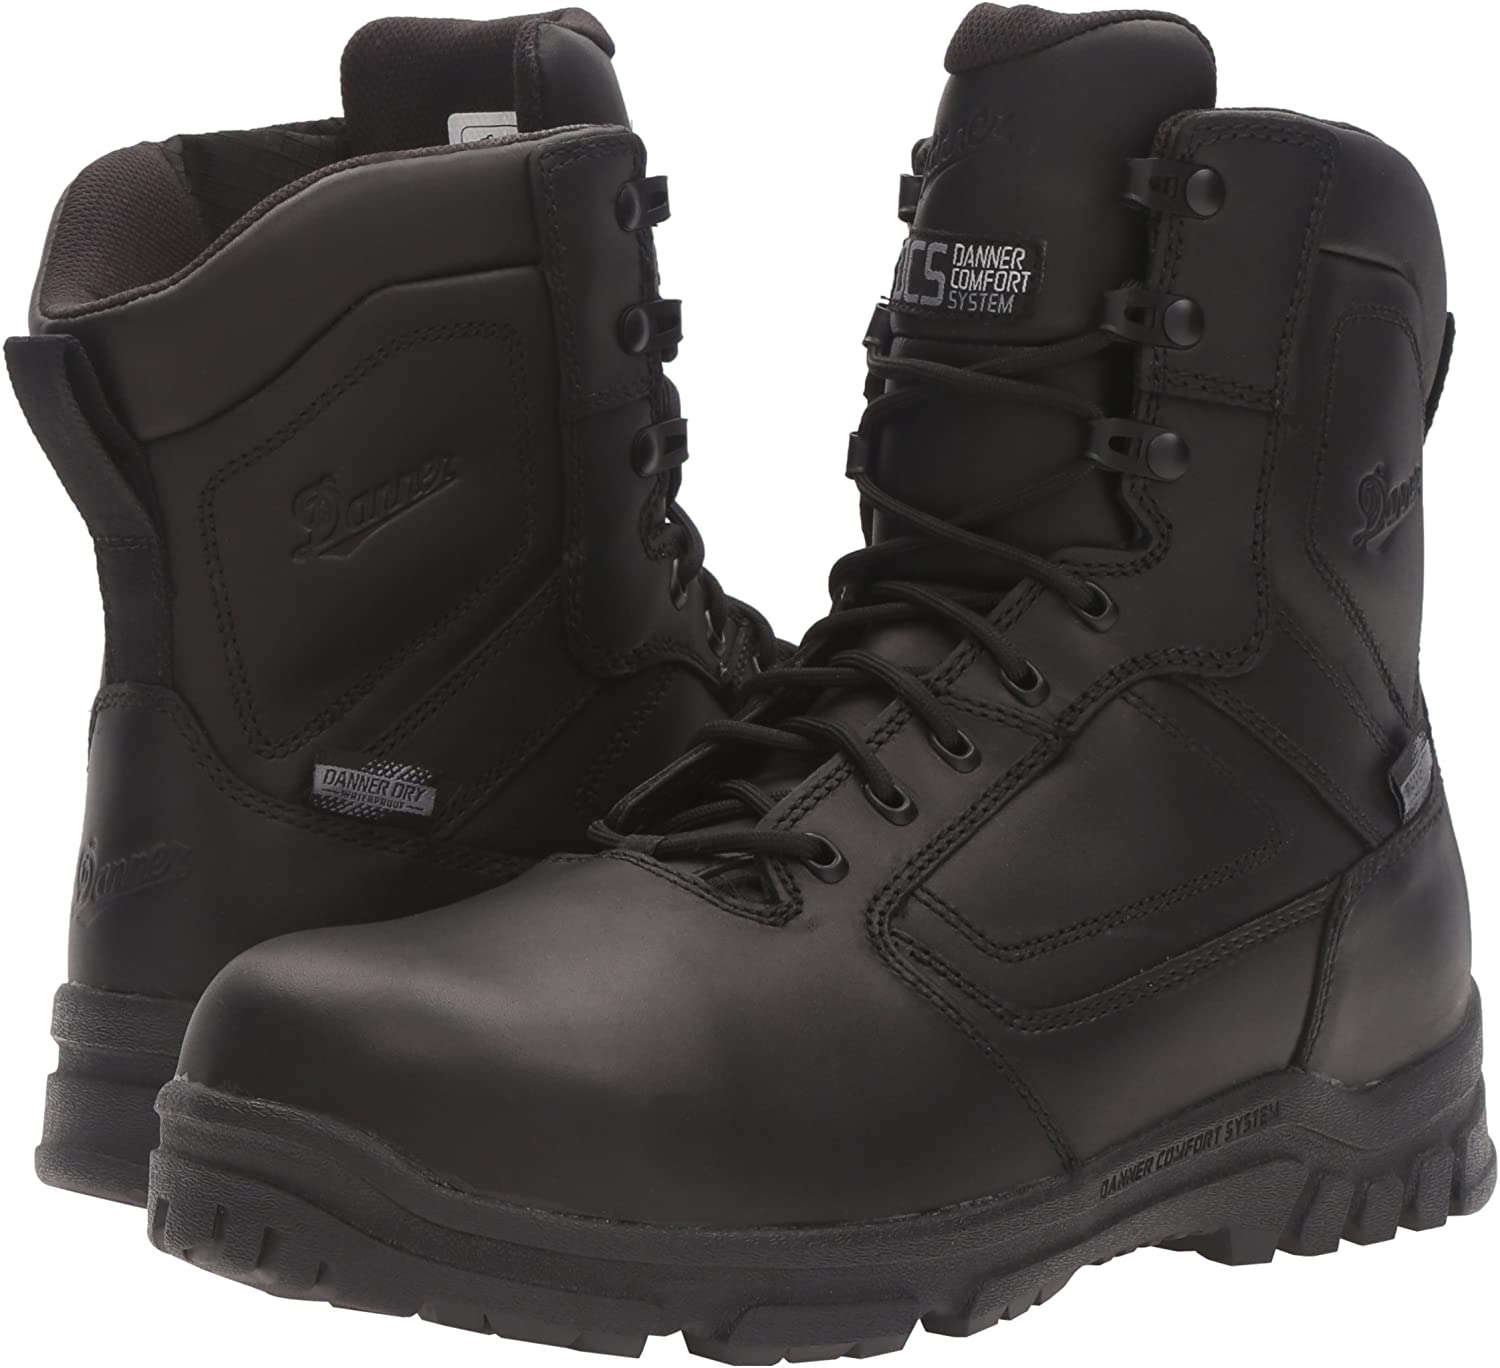 Danner Men's EMS Side-zip Nmt Military Boots will serve you for many years.